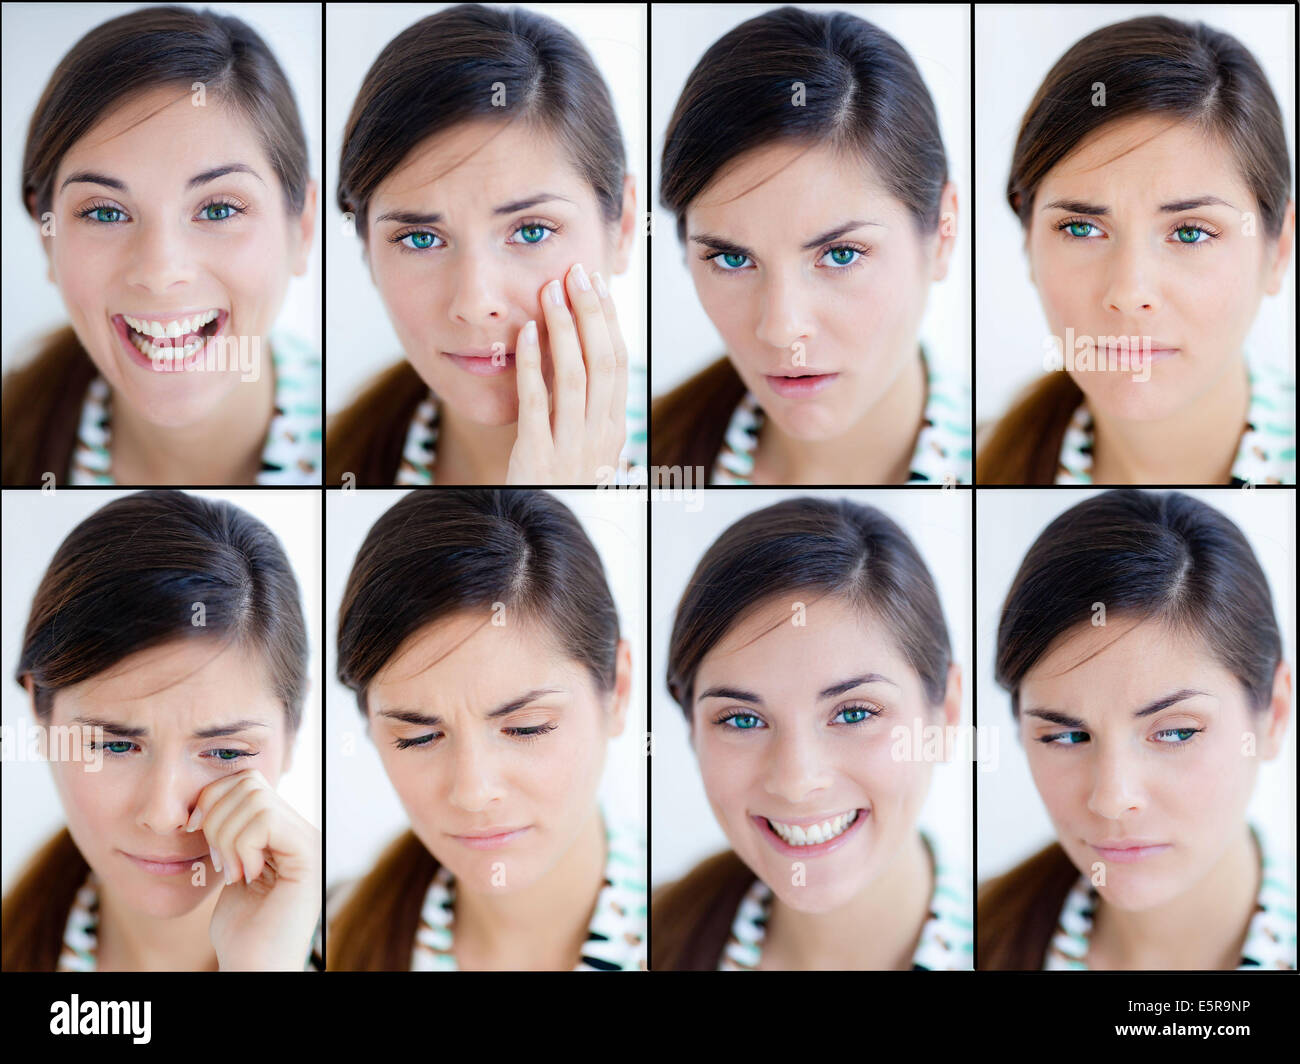 Conceptual image of Personality disorder. - Stock Image